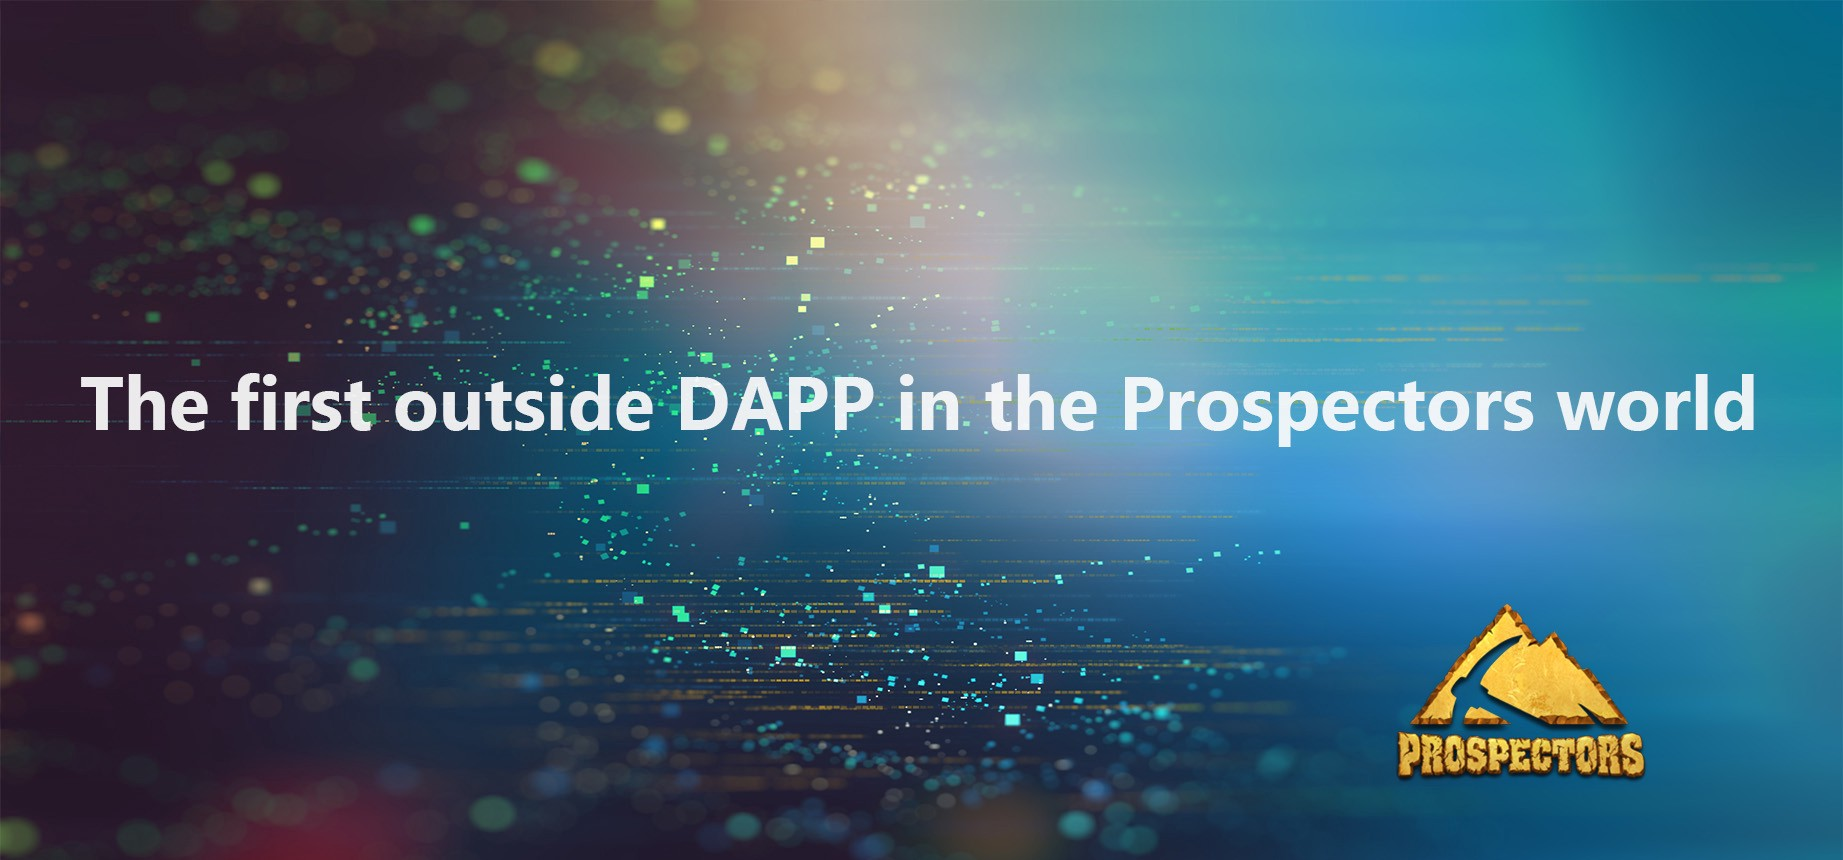 The Prospectors world introduces the first outside dapp